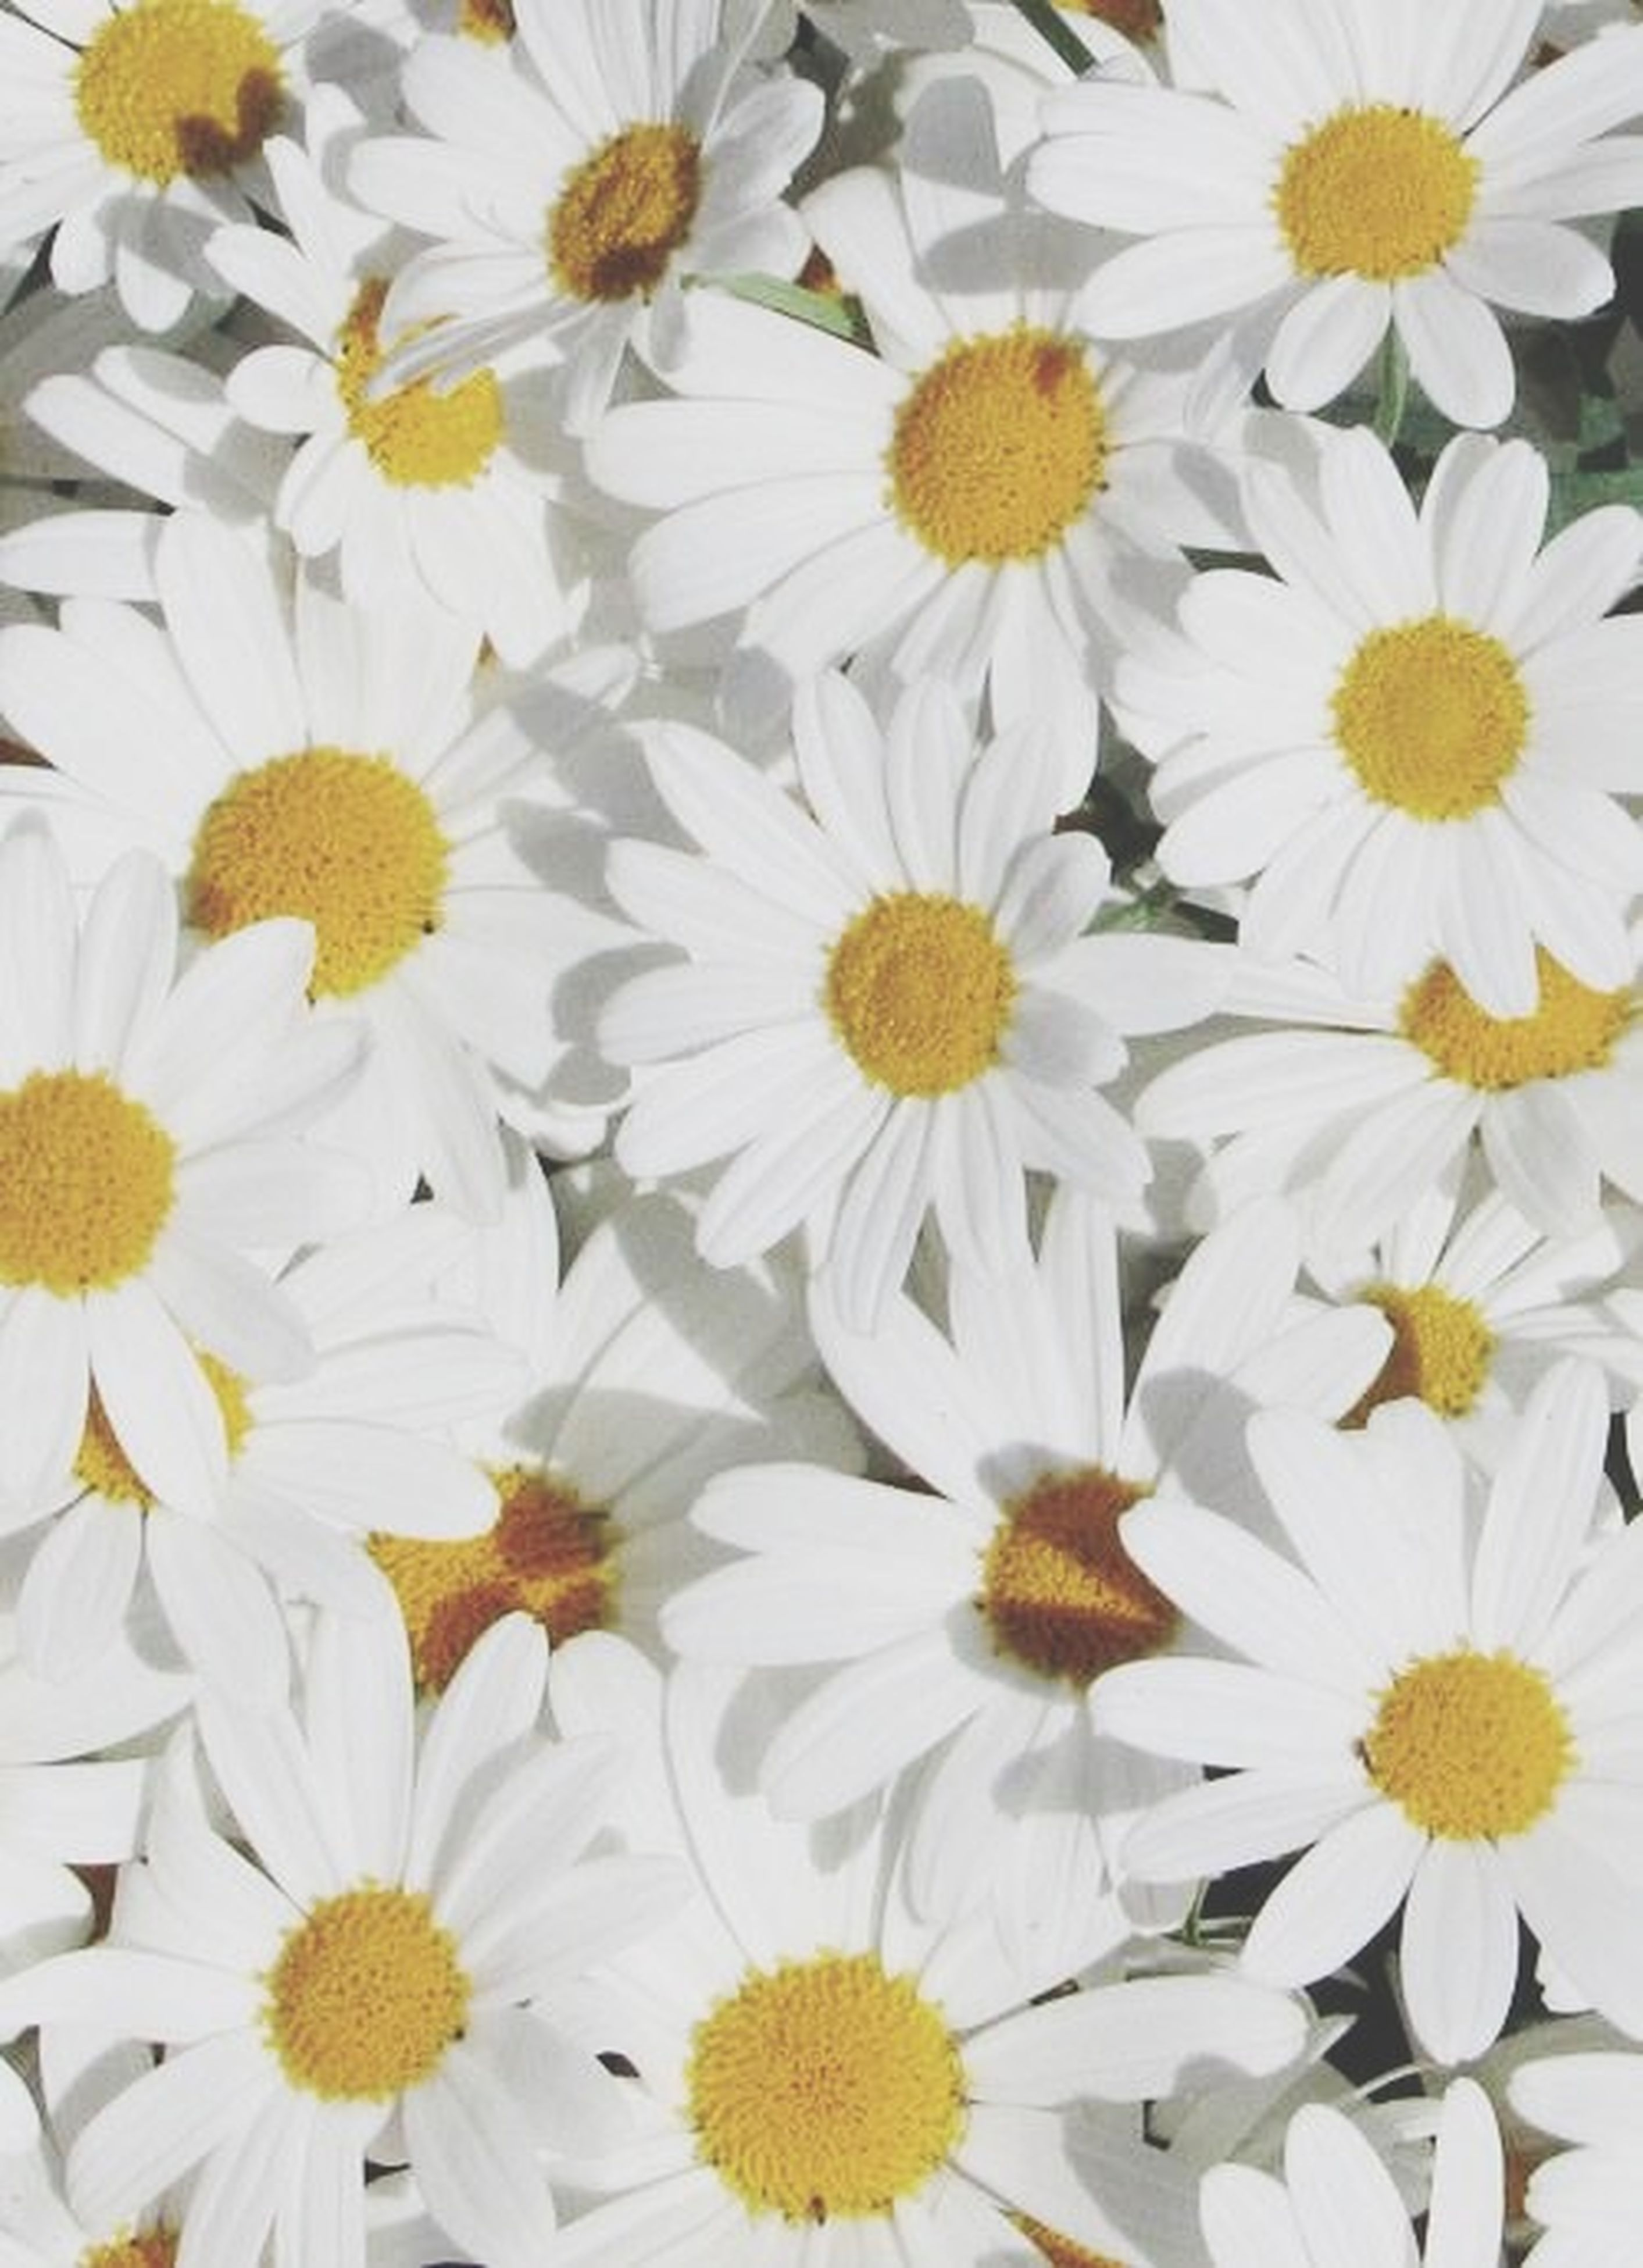 flower, freshness, petal, fragility, flower head, beauty in nature, white color, daisy, growth, blooming, yellow, pollen, nature, full frame, backgrounds, close-up, high angle view, abundance, plant, in bloom